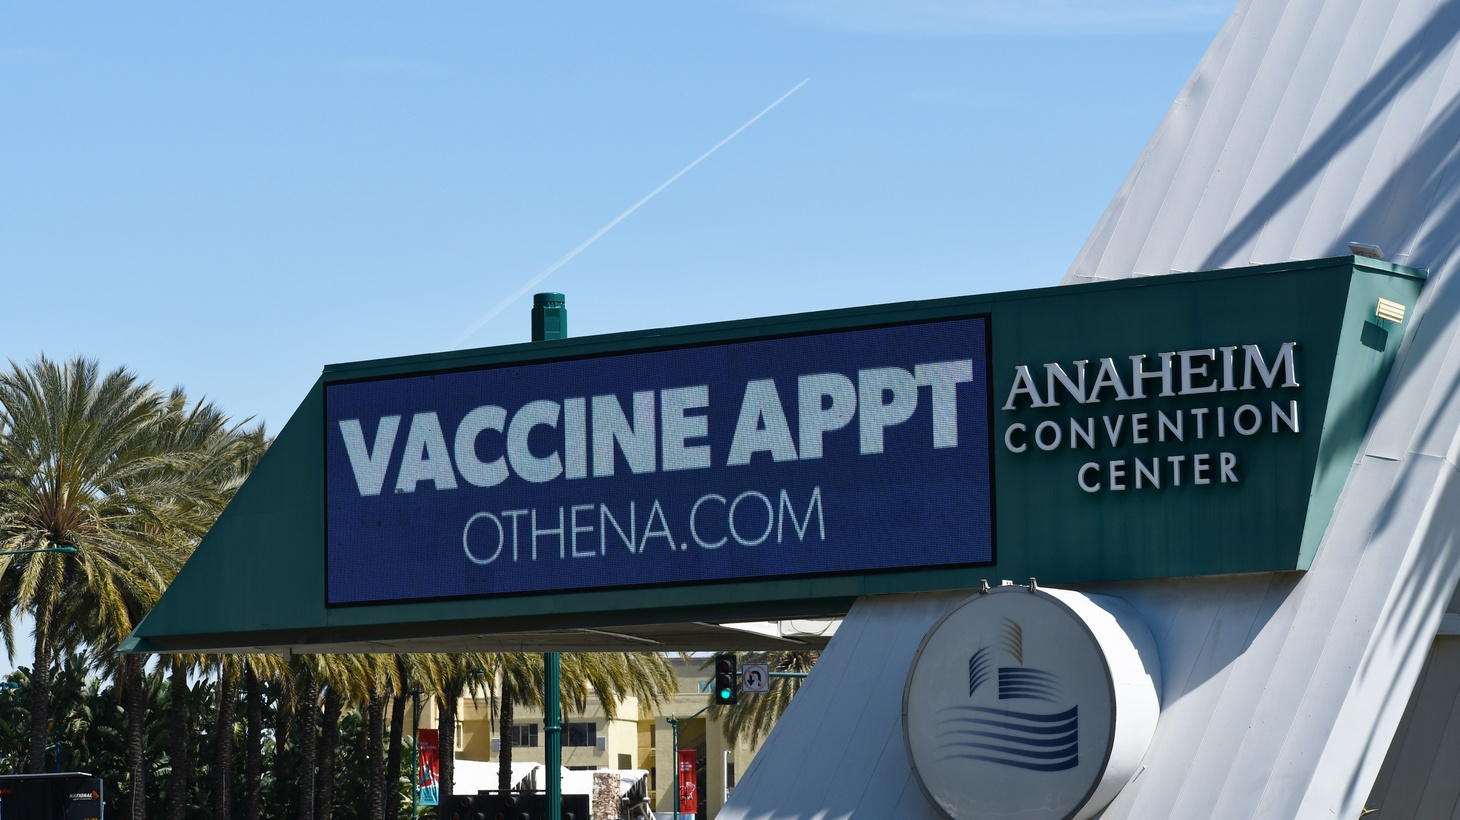 The Anaheim Convention Center is a mass coronavirus vaccination site in Orange County. Researchers have found symptoms can persist long after contracting COVID-19. These include fatigue, fevers, anxiety, depression, and more.